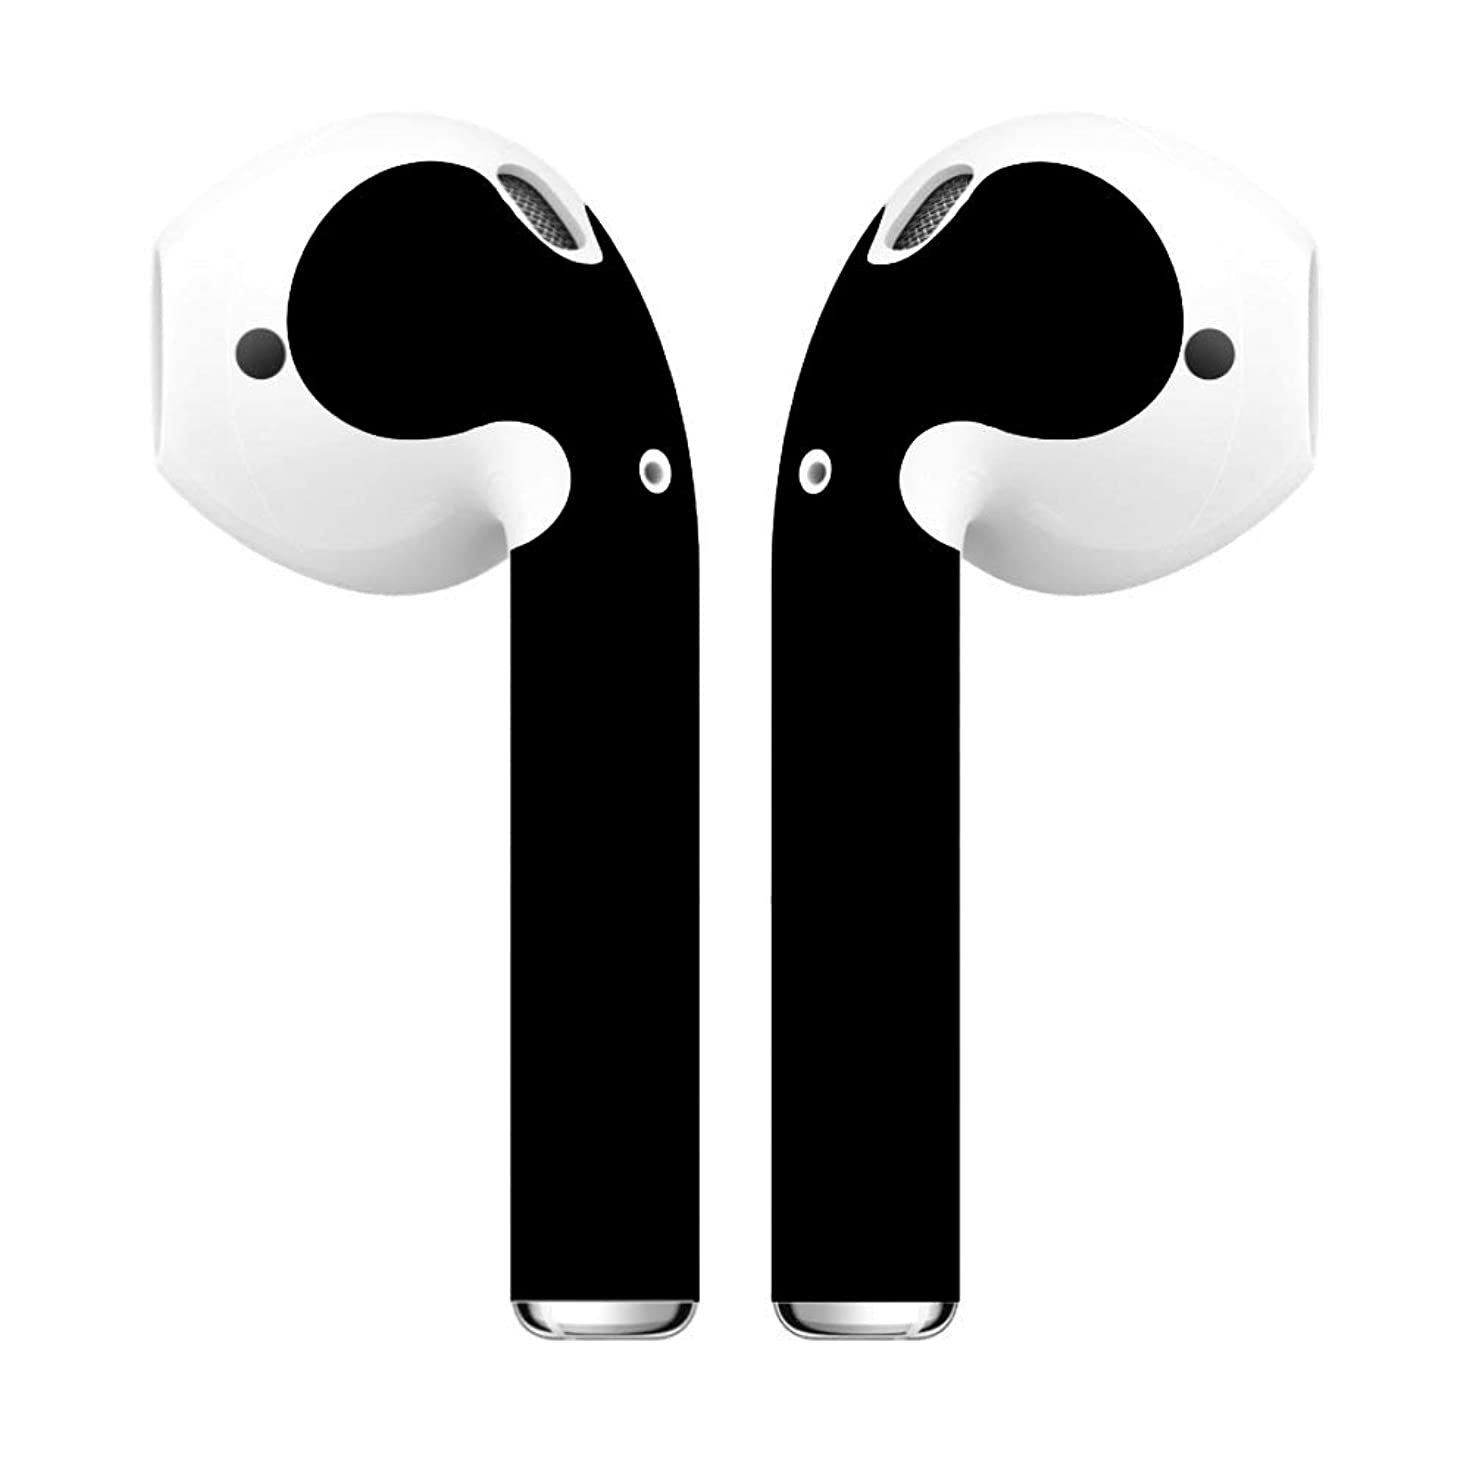 AirPod Skins, Wraps & Covers - Premium Accessories for Style, Customization & Protection - Compatible with AirPods 1 and 2 (Black Matte)